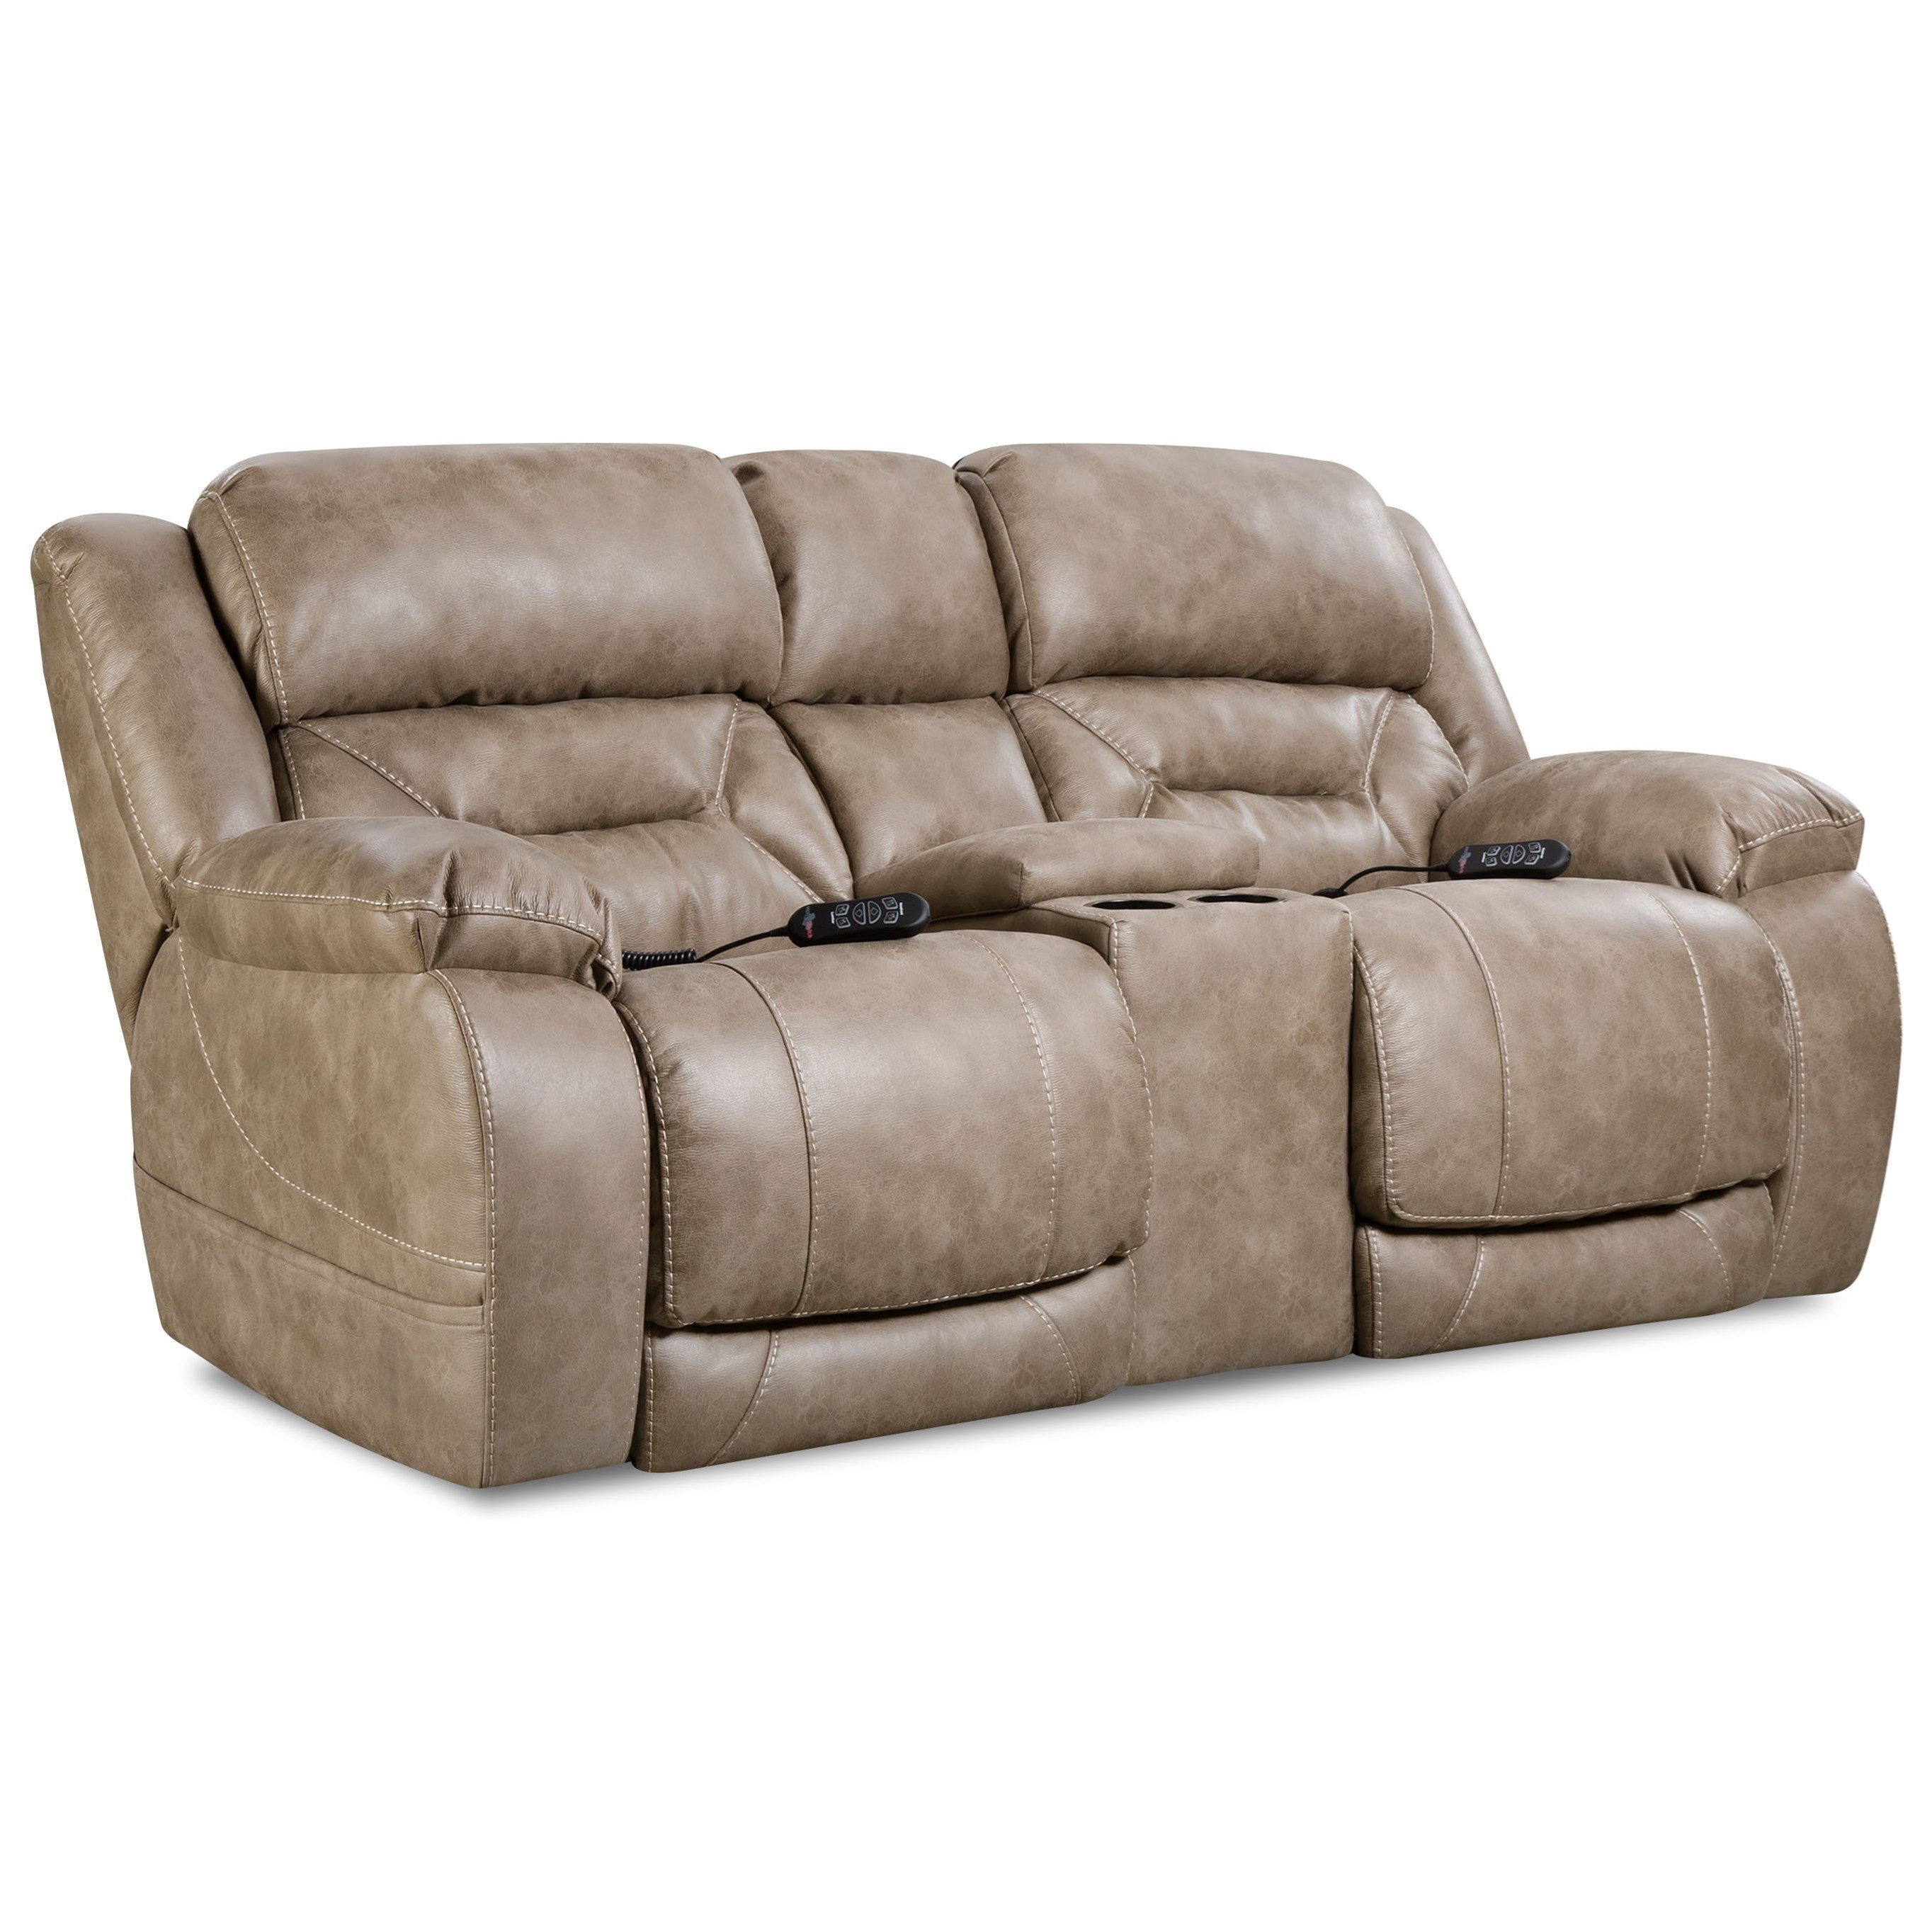 Enterprise Power Reclining Loveseat